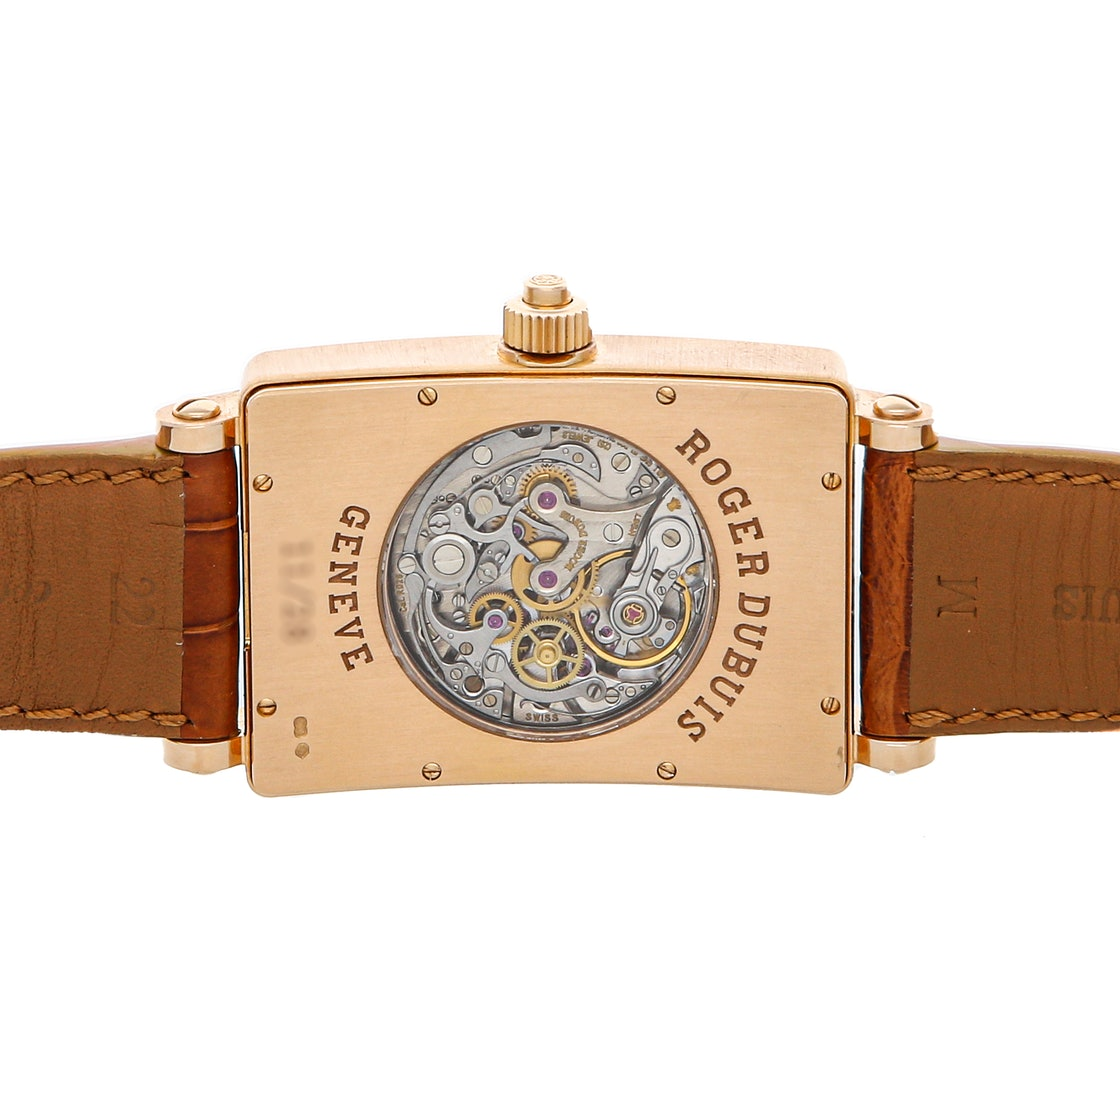 Roger Dubuis Much More Chronograph Monopulsante Limited Edition M32.28.5